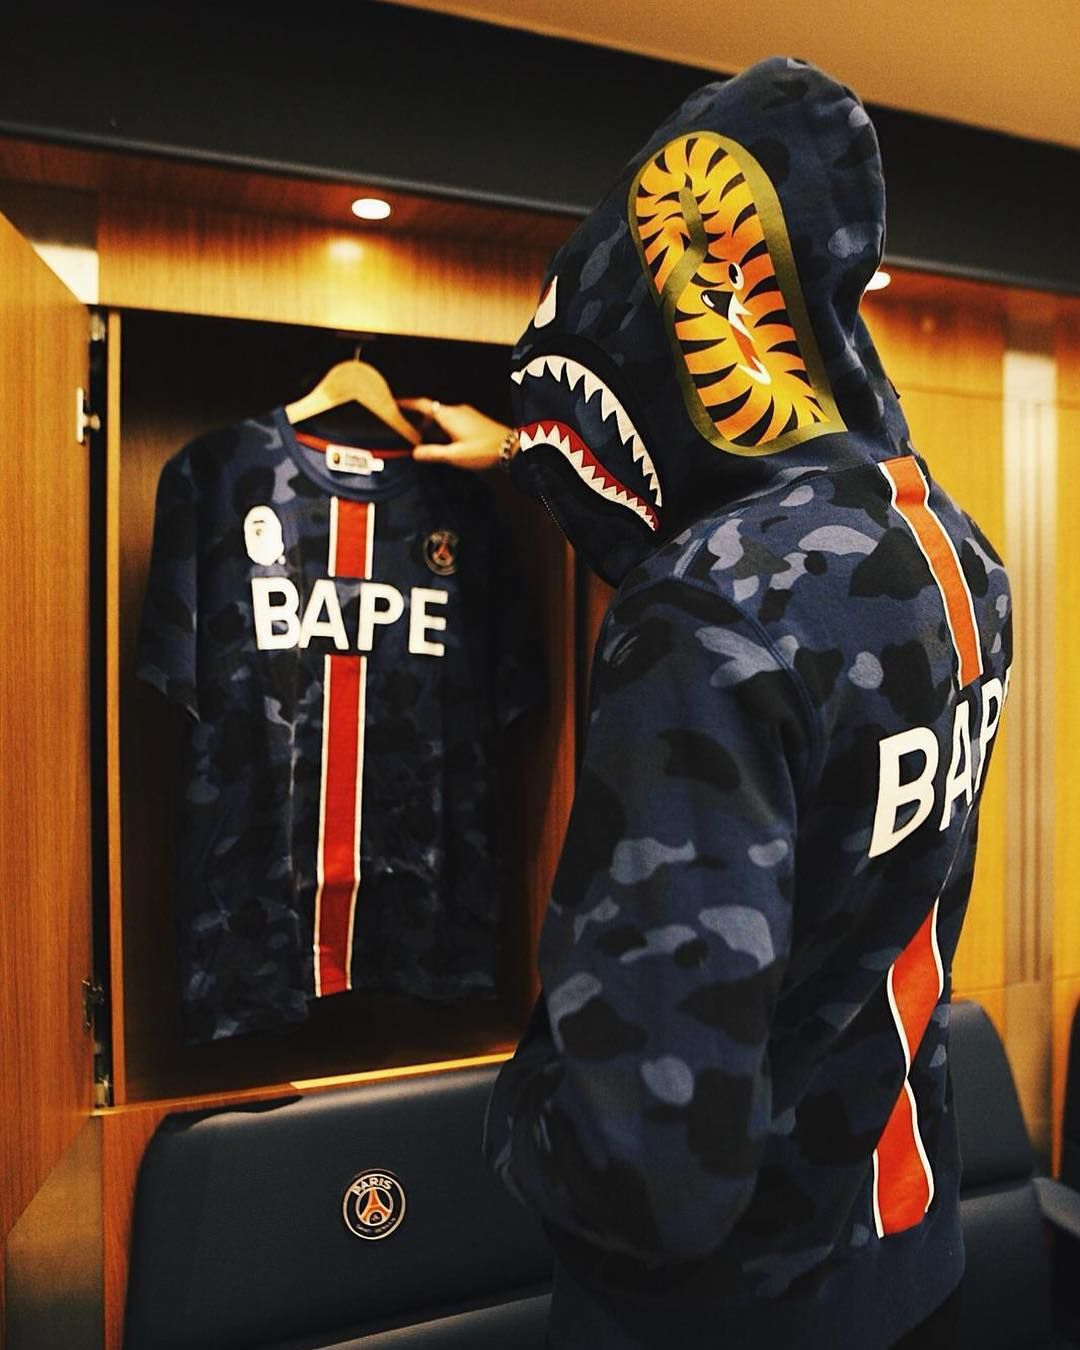 Following multiple teasers, BAPE shares official imagery of